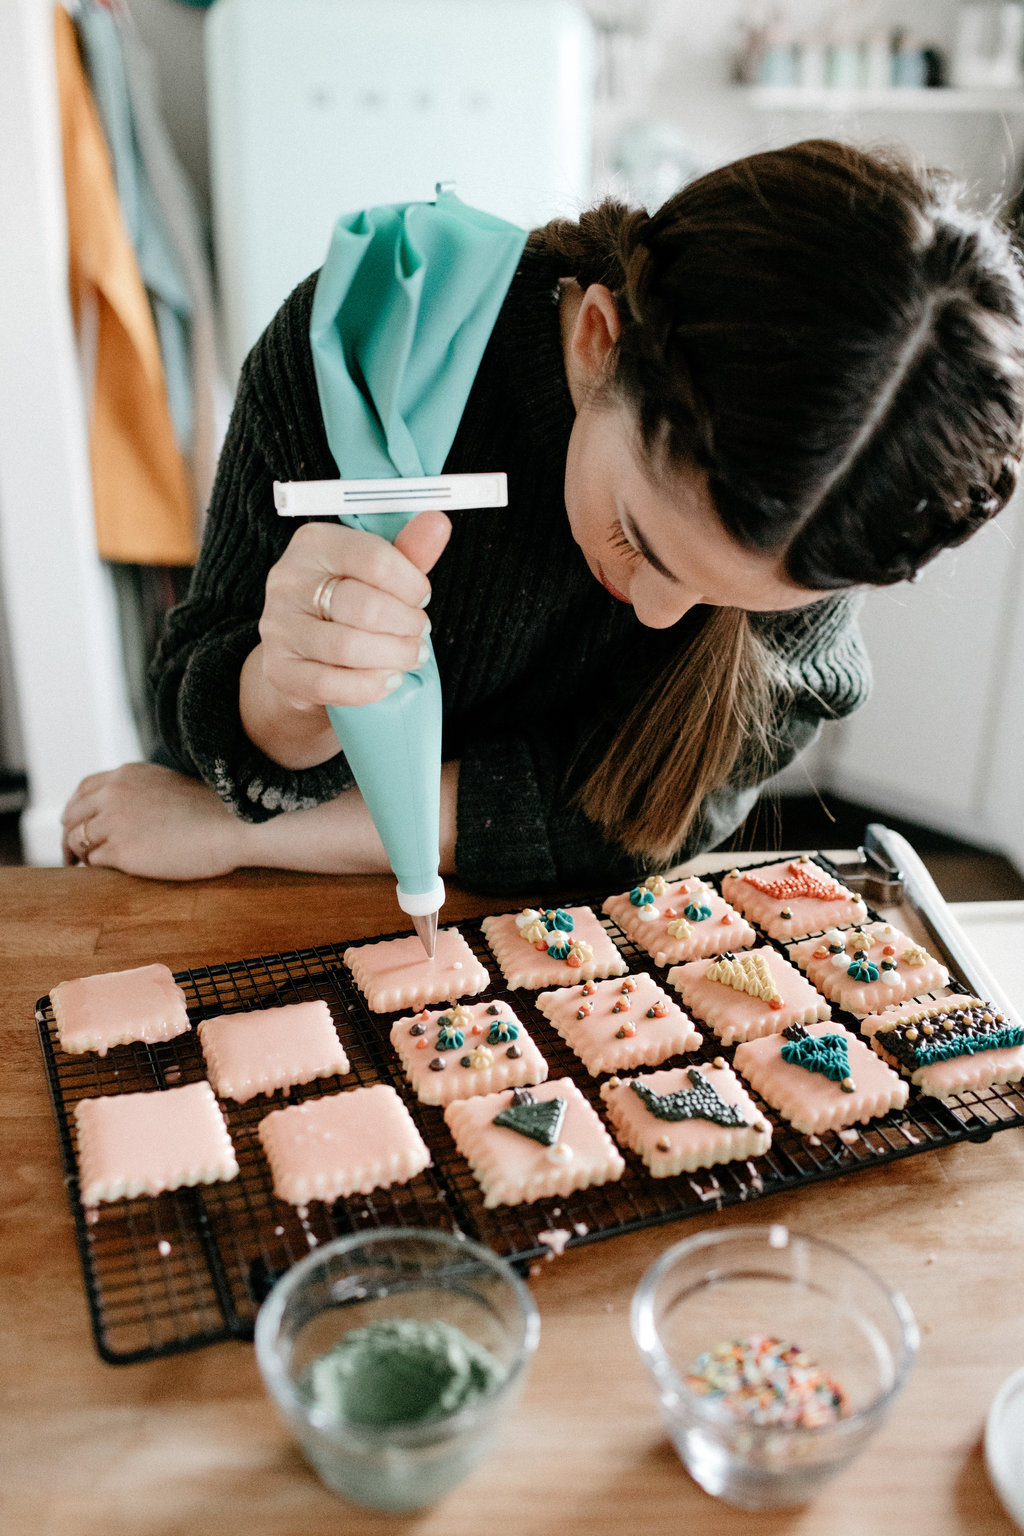 molly-yeh-pampered-chef-cookies-42.jpg